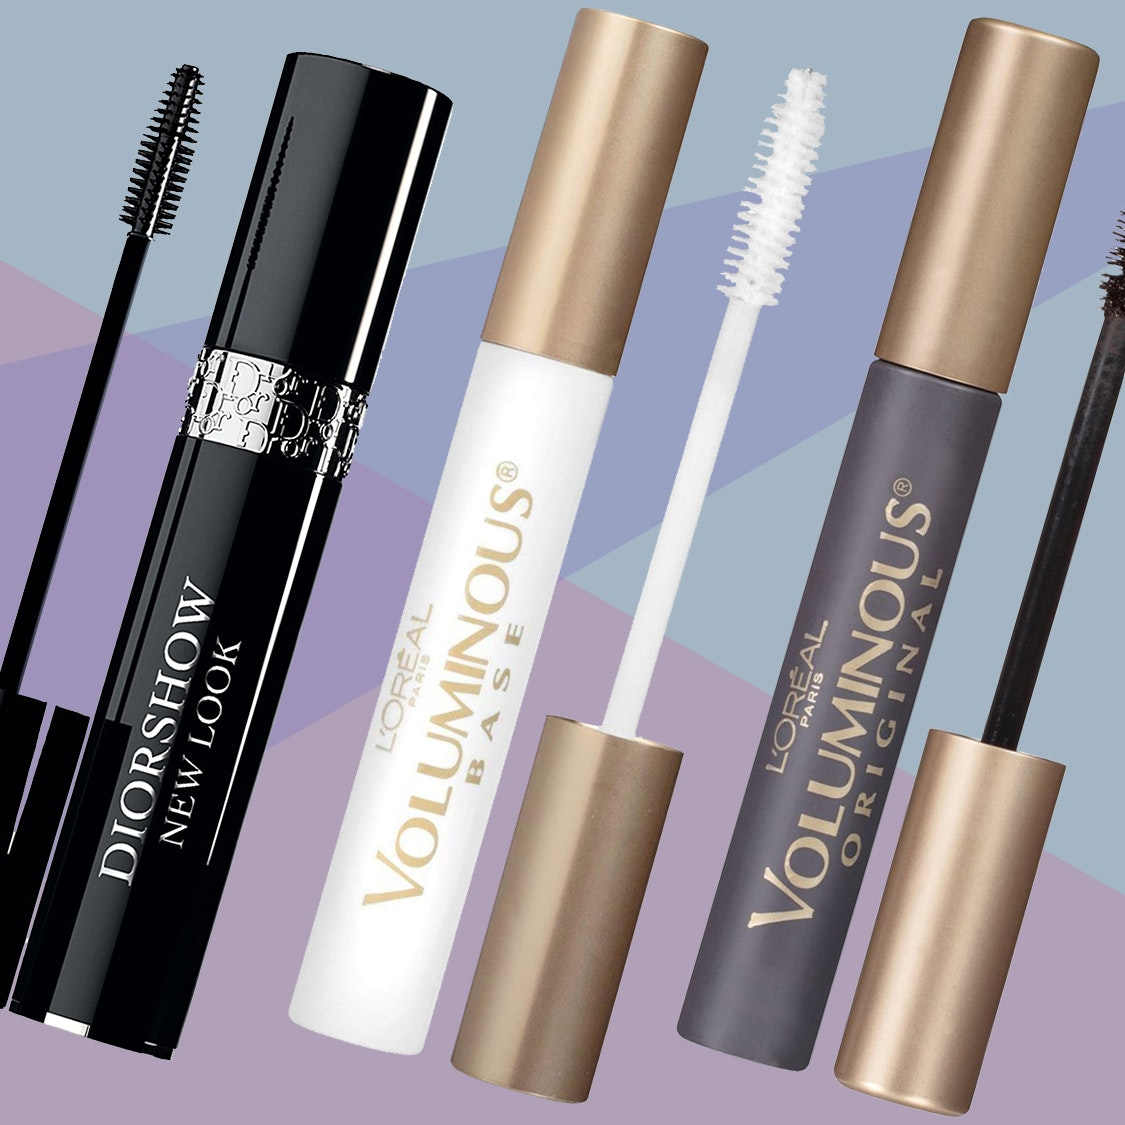 5 Makeup Artist-Recommended Mascaras You Can Snag on Amazon